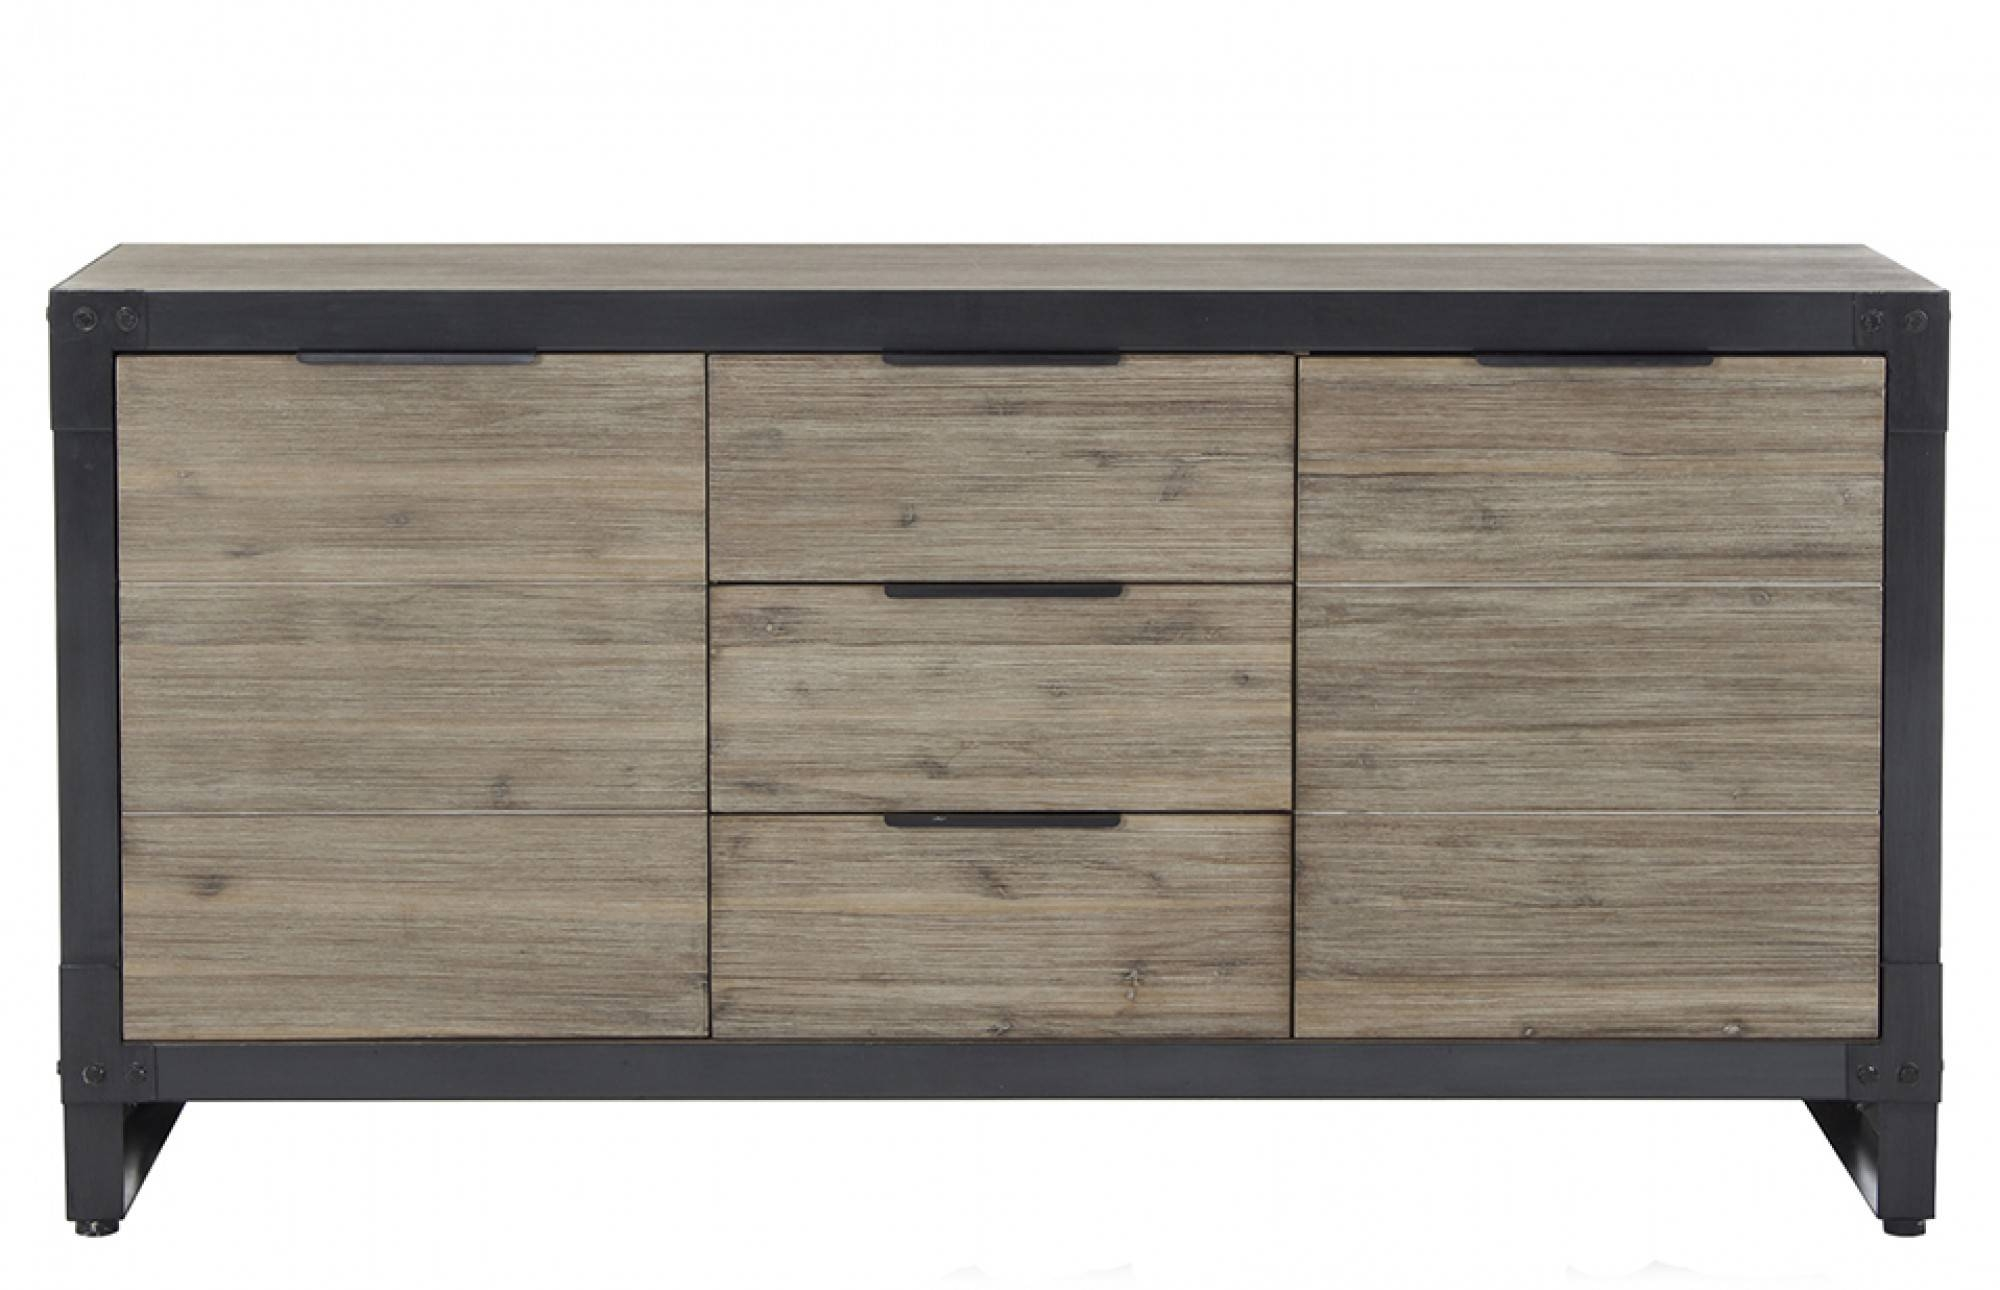 Sideboards, Storage & Shelving – Home Furniture – Out & Out Original With Trendy Sideboards (View 7 of 15)